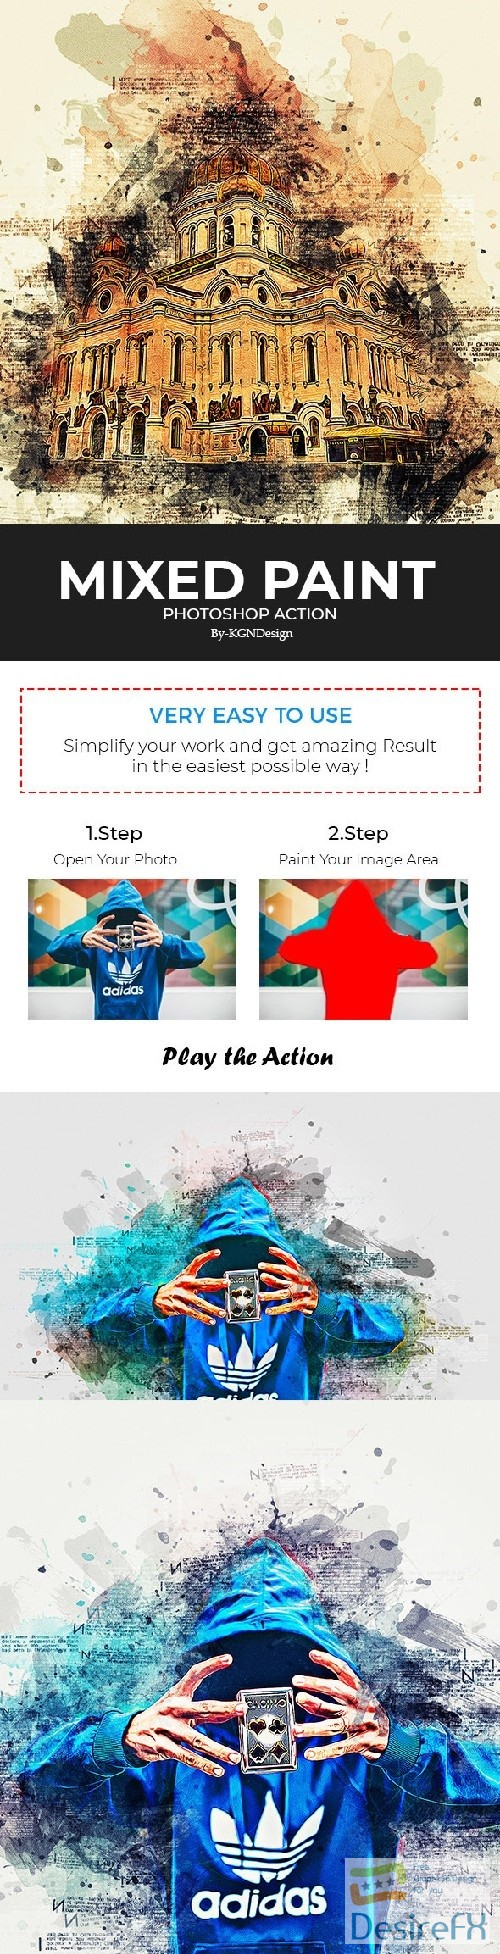 Mixed Paint Photoshop Action 22335350